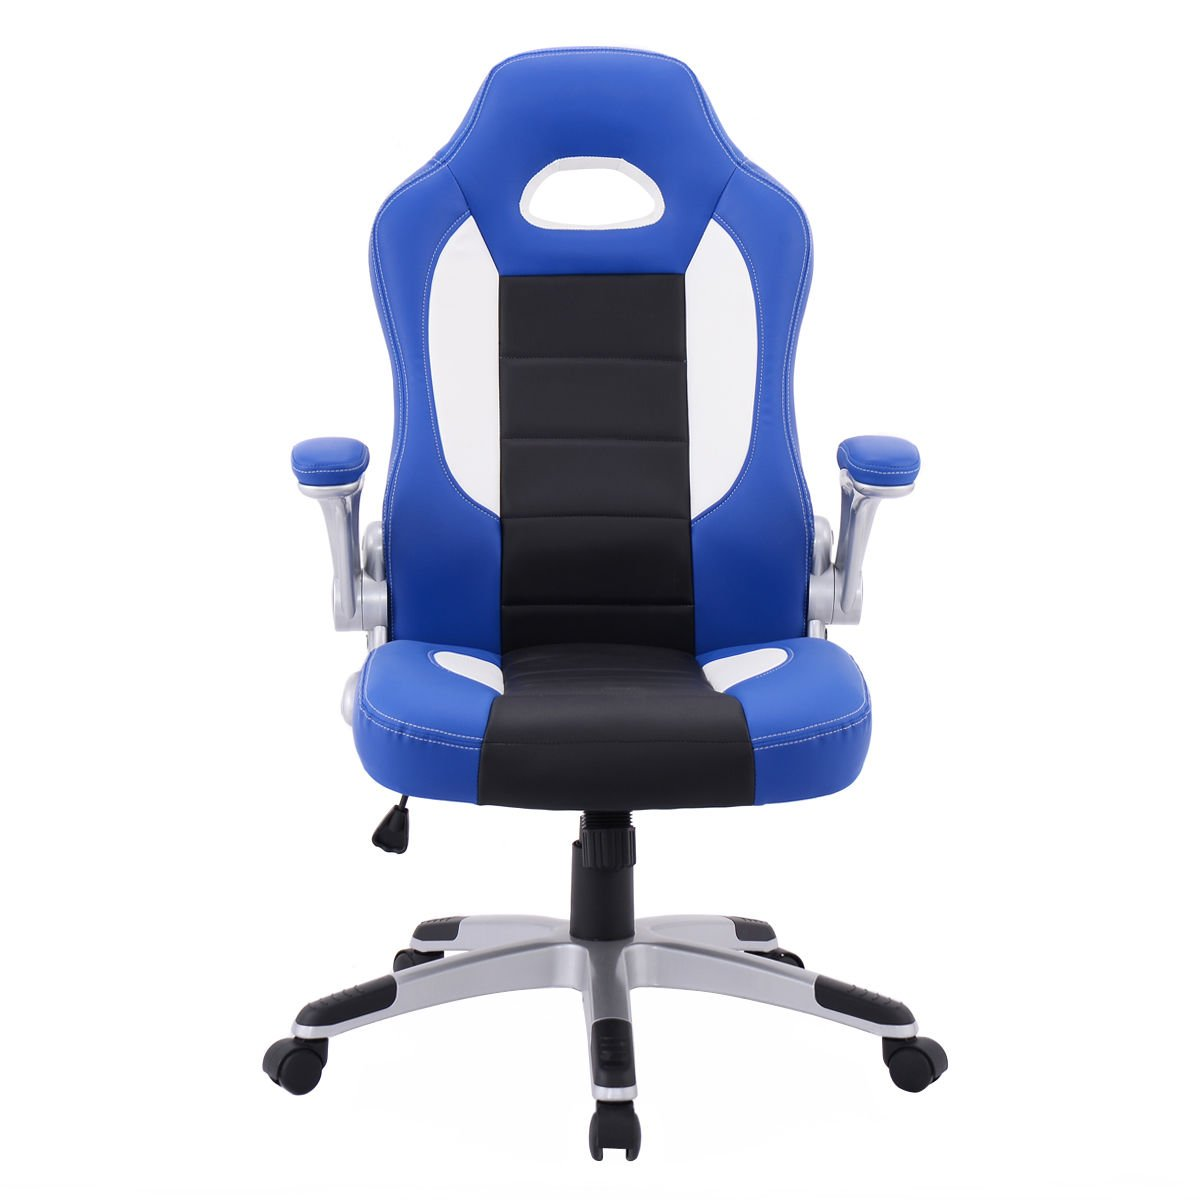 Amazon.com : PU Leather Executive Racing Style Bucket Seat Chair ...